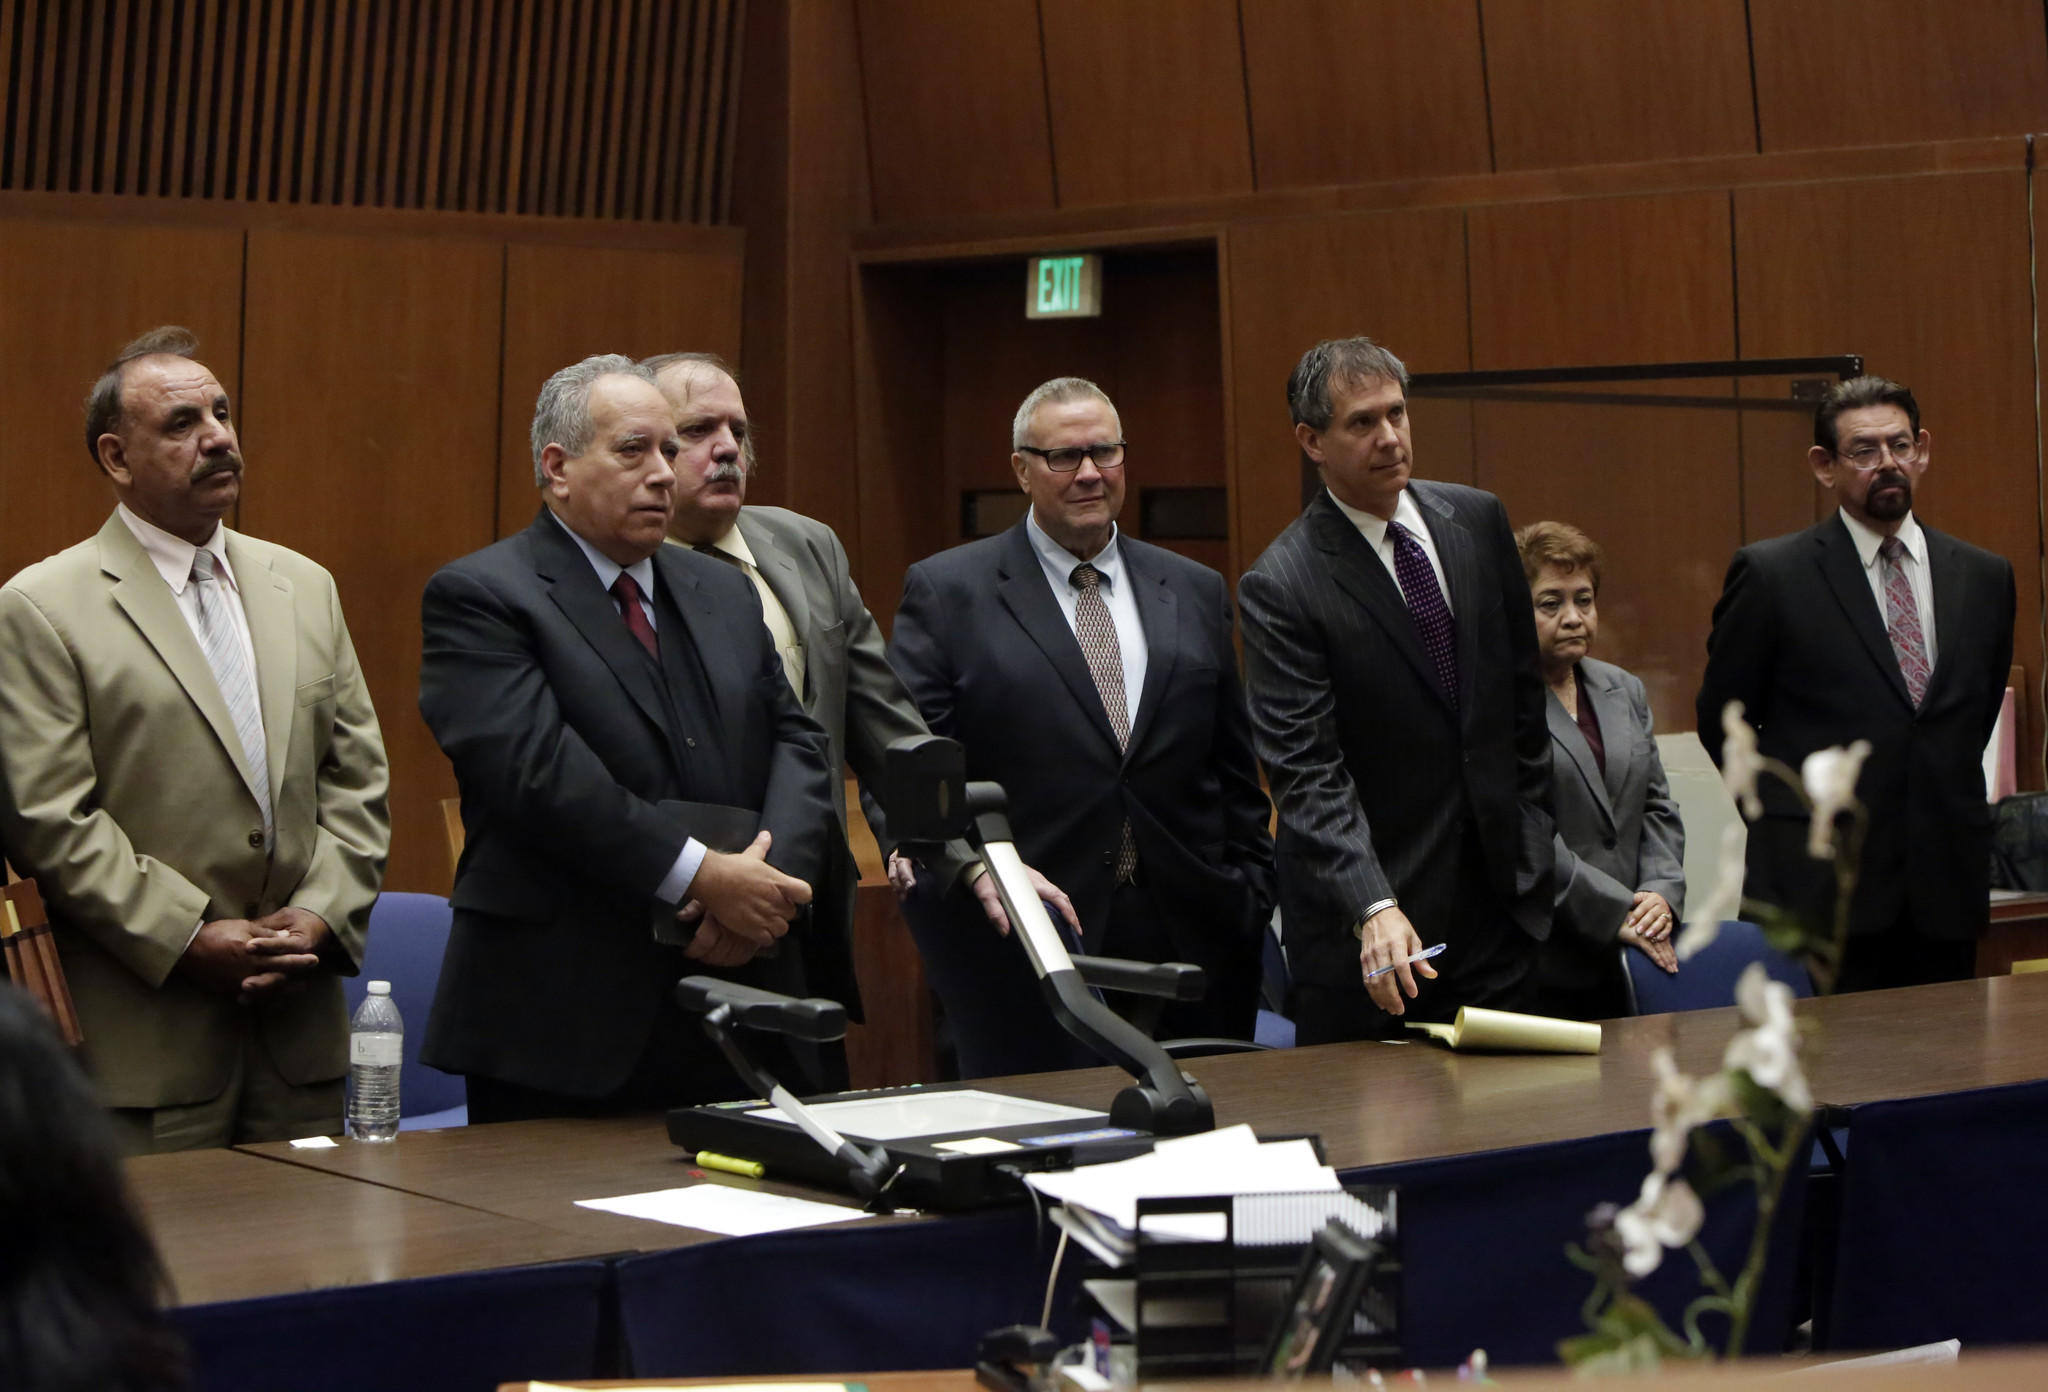 Oscar Hernandez, left, stands with Victor Bello and George Cole, third and fourth from left, Teresa Jacobo, second from right, and George Mirabal, right. The other men pictured, second from left and third from right, are defense lawyers.